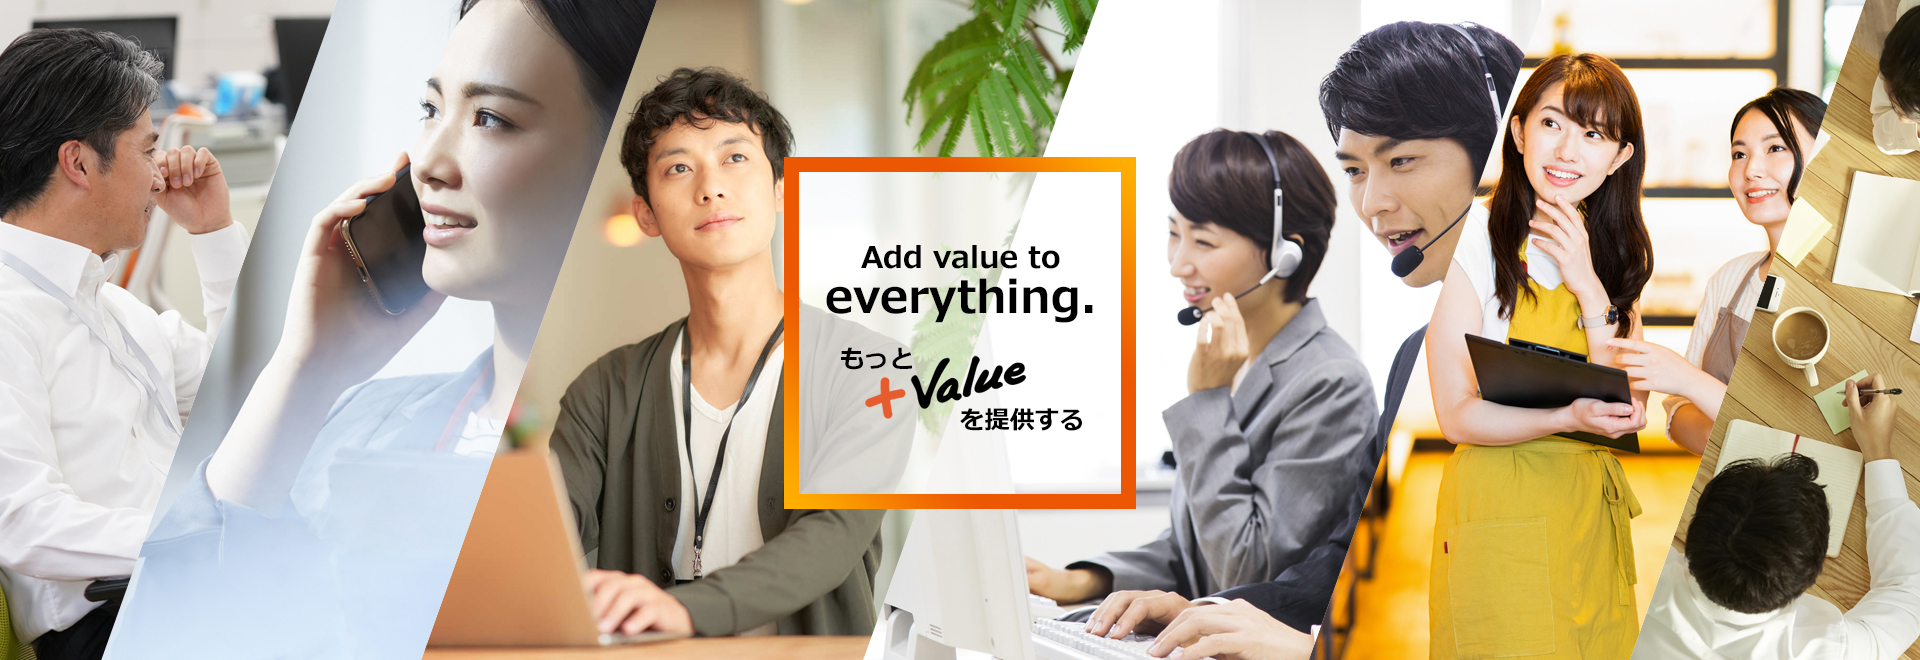 Add value to everything. もっと+valueを提供する